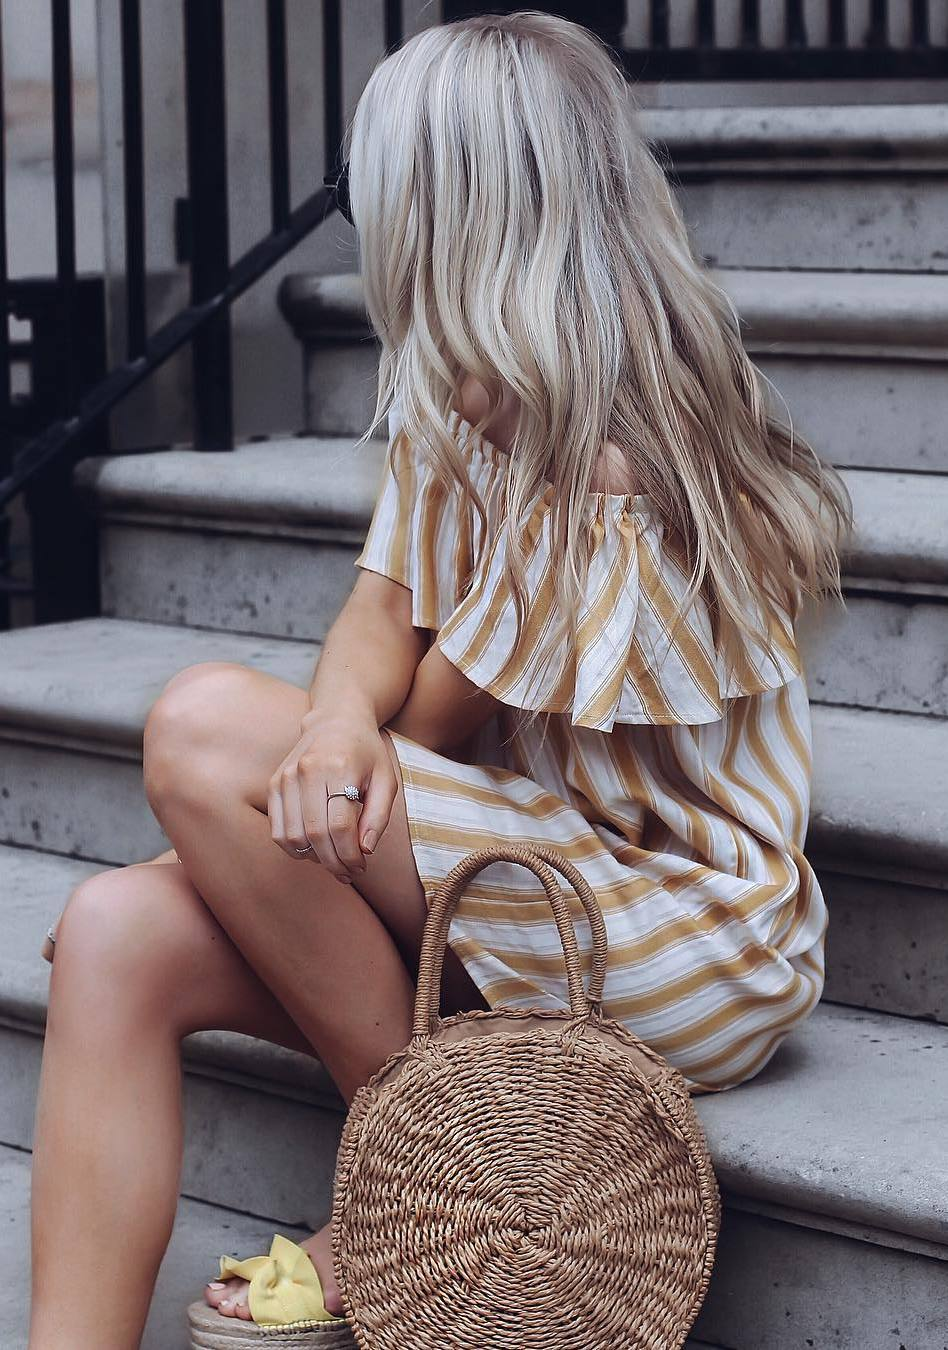 summer outfit / ruffle off shoulder dress +flip-flop + bag